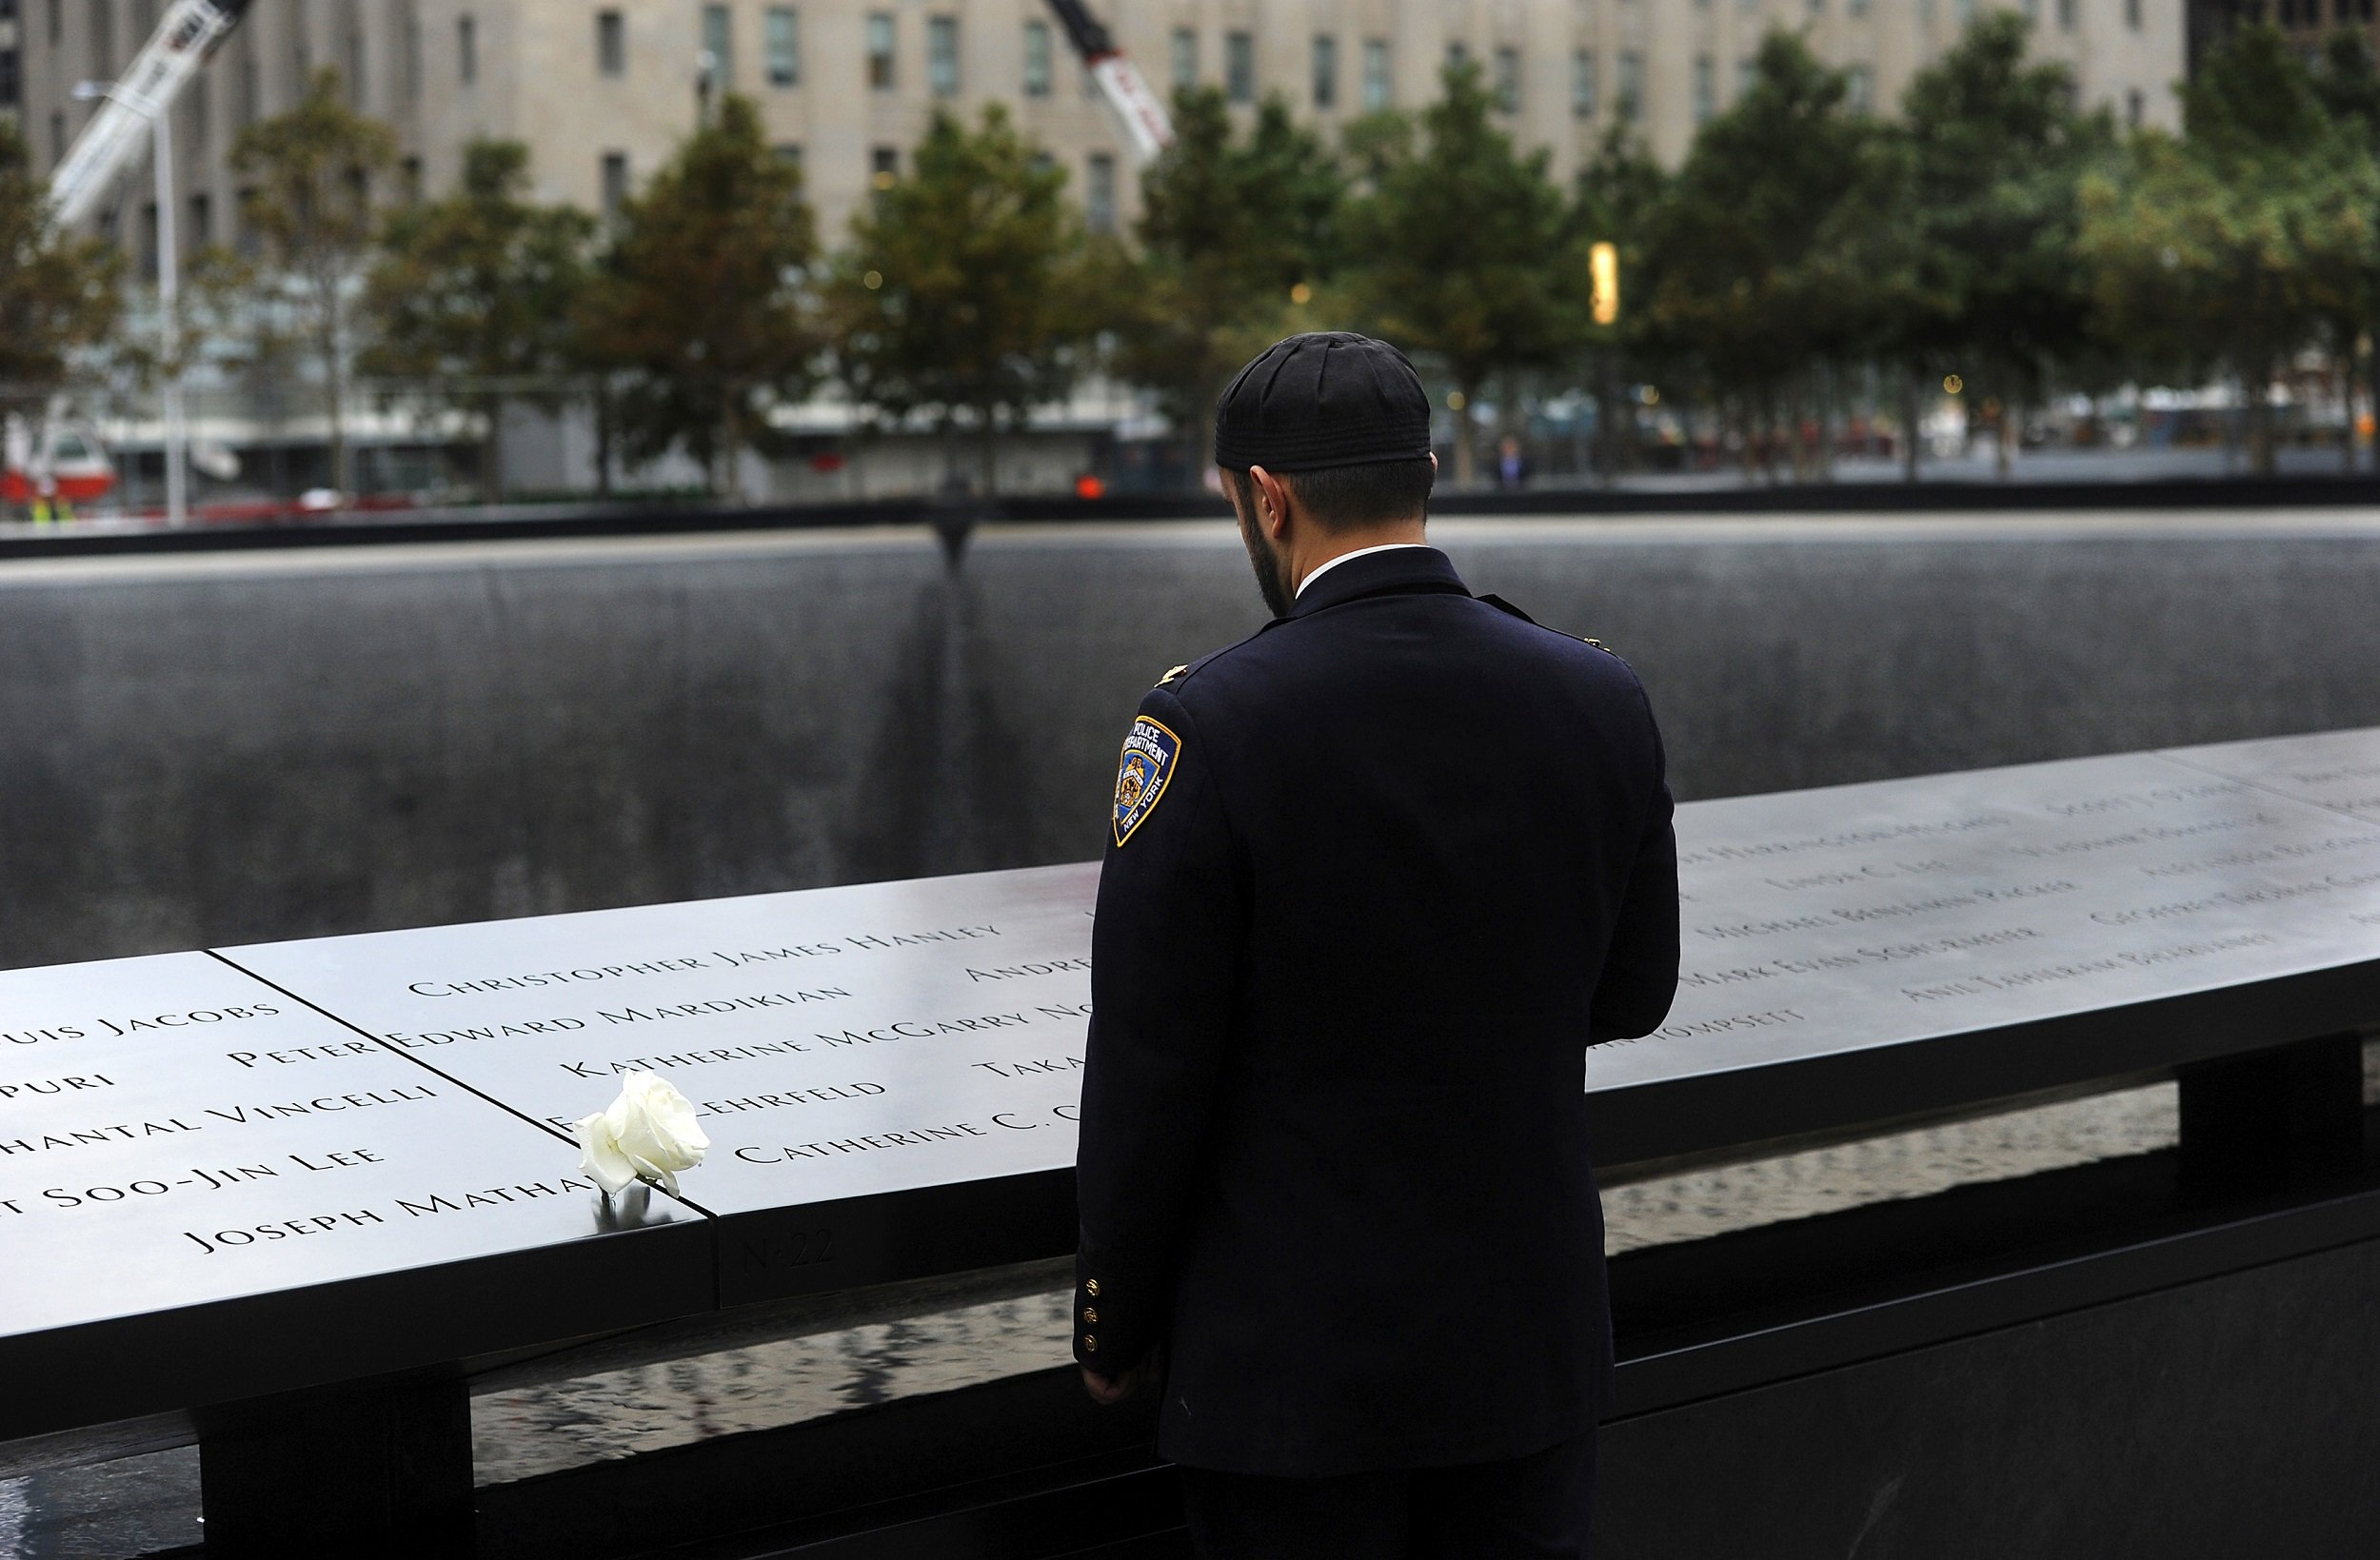 IS A TERRORIST ATTACK MORE OR LESS LIKELY ON 9/11?